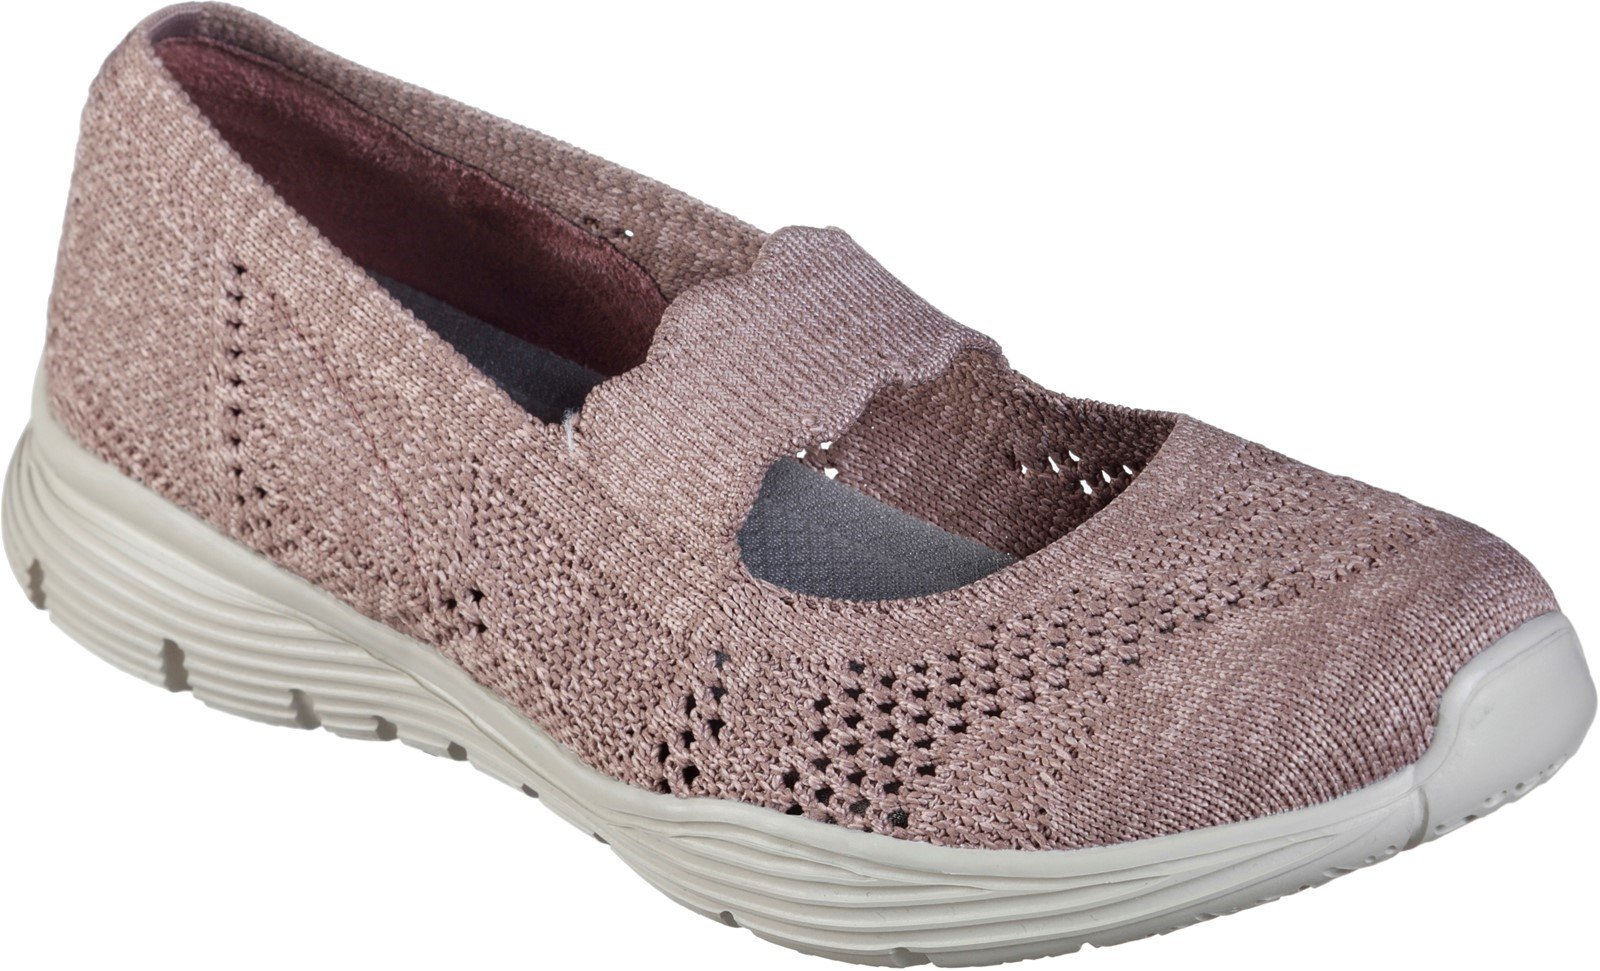 Skechers Women's Seager Pitch Out Slip On Loafer Burgundy 32126 - Burgundy 3